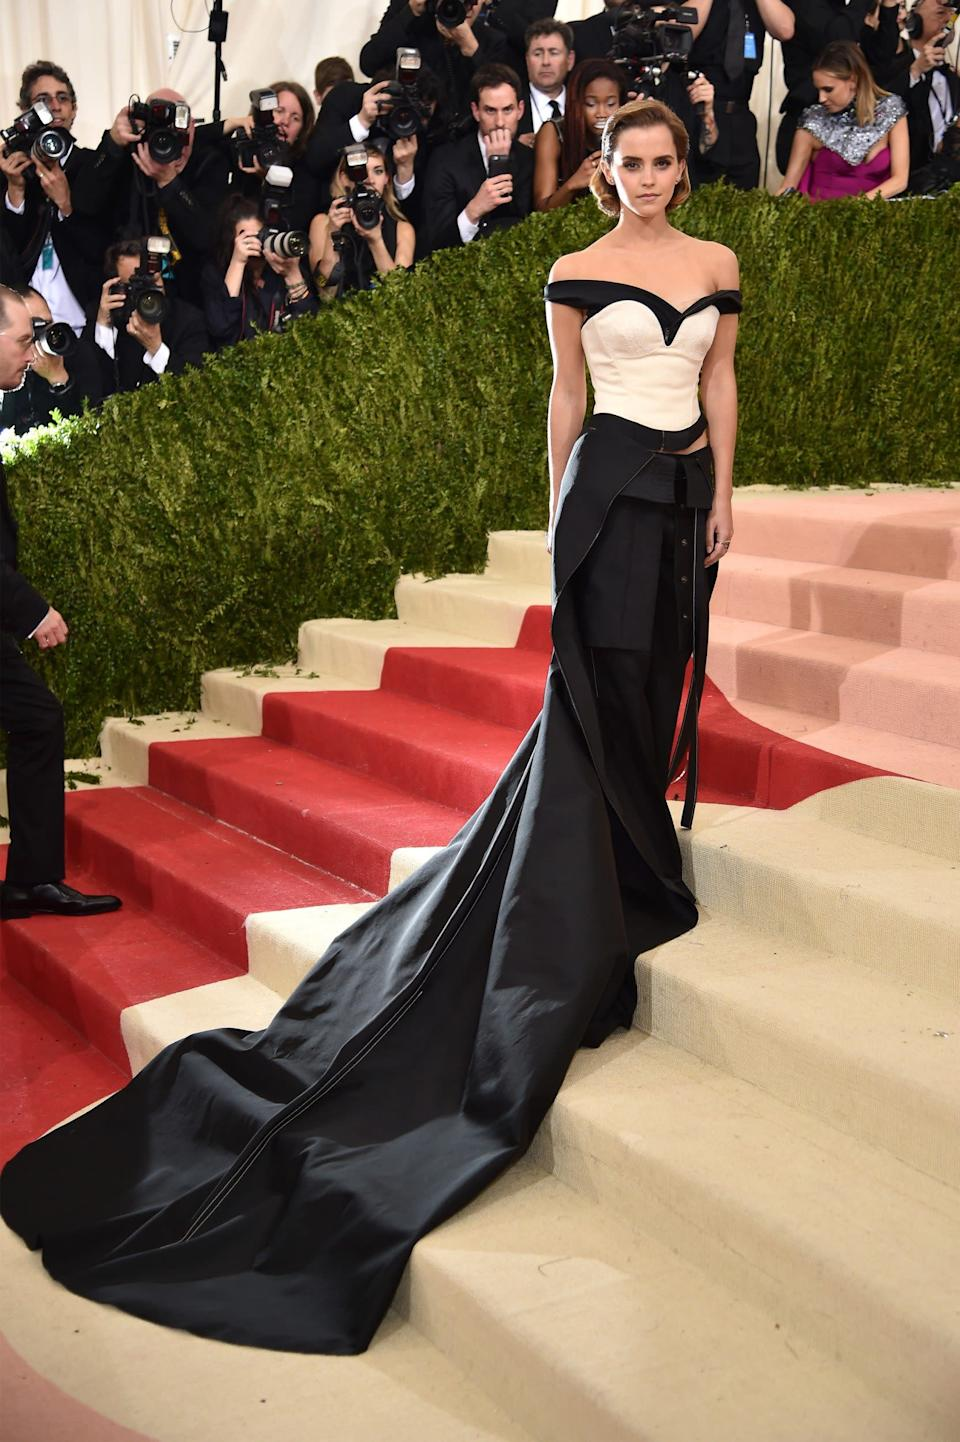 Watson wore a Calvin Klein dress made from recycled plastic bottles to the 2016 Met Gala - Getty